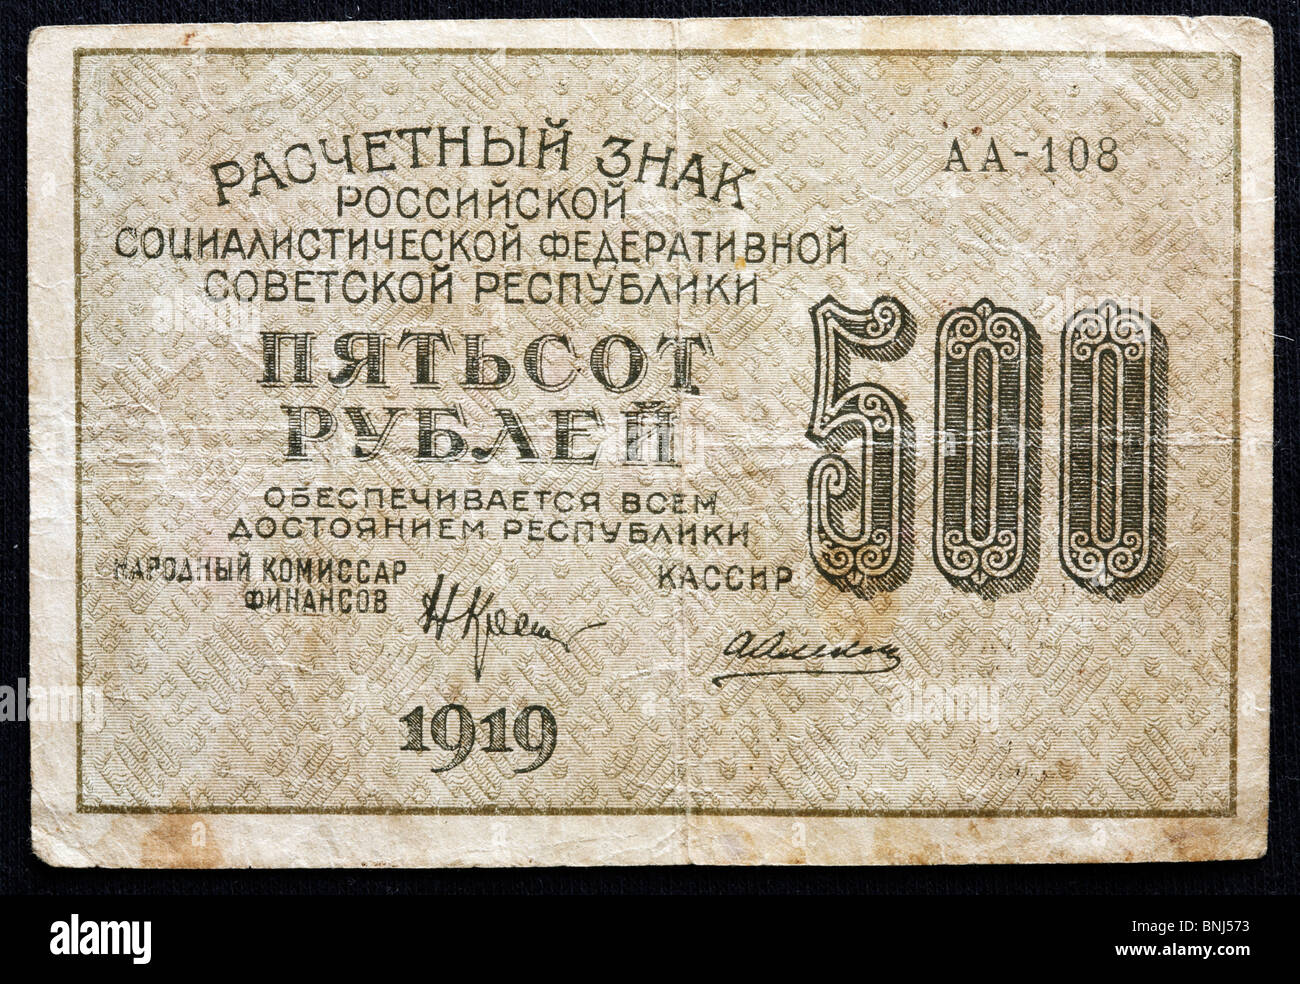 Color money Russia Russian numismatics Note rouble ruble Soviet communist 1910s 1920s Collectible Collection Collecting - Stock Image